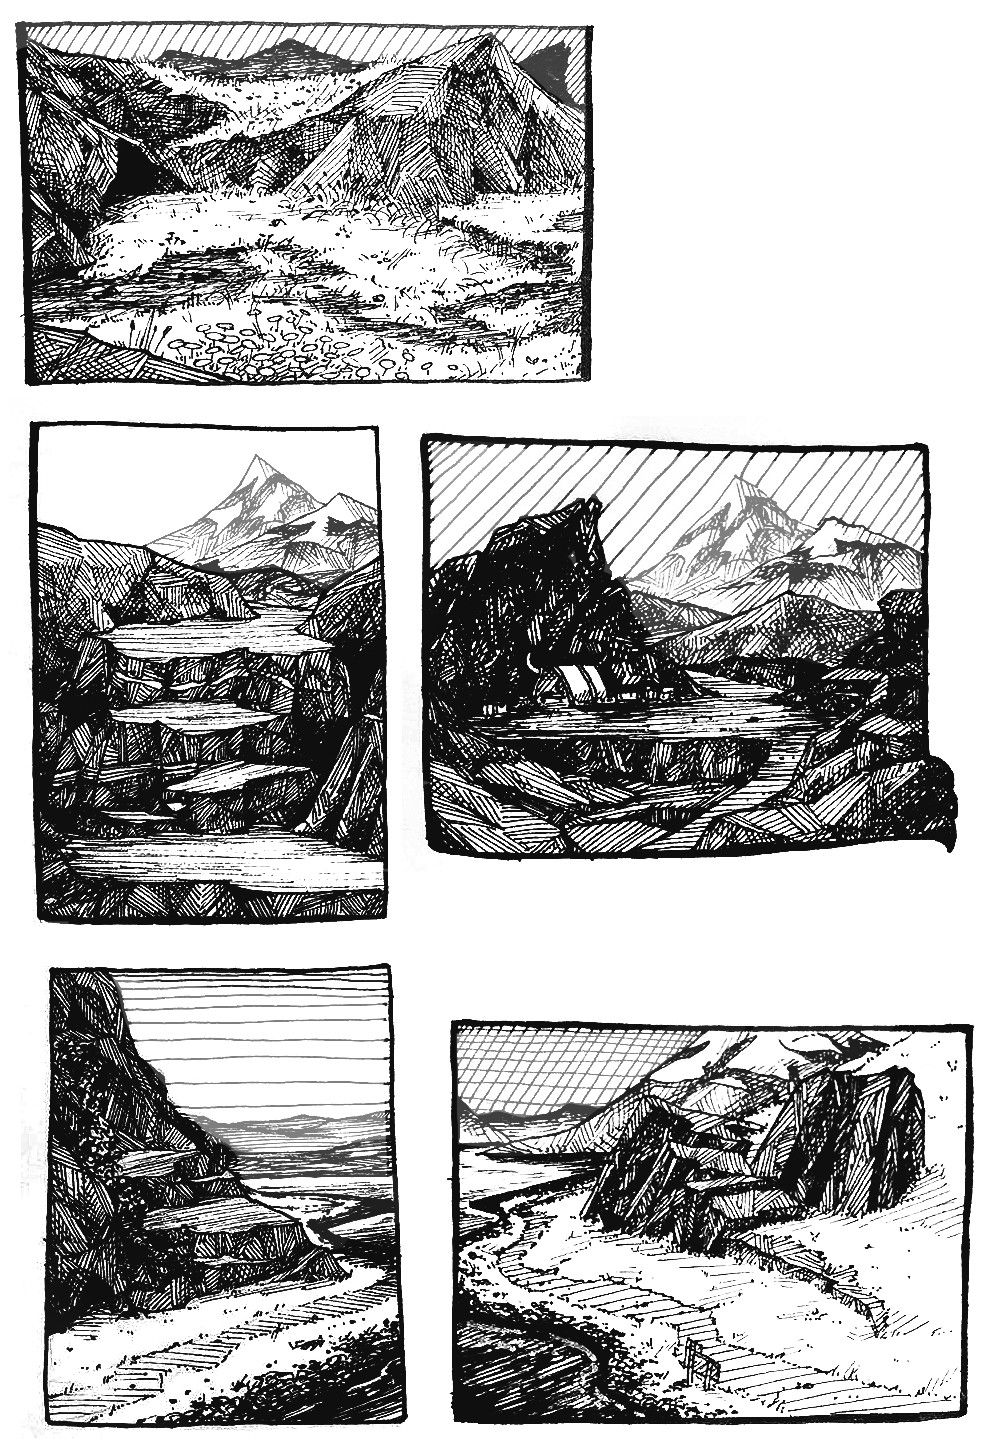 Sketches of a mountain trail from a dream I had.